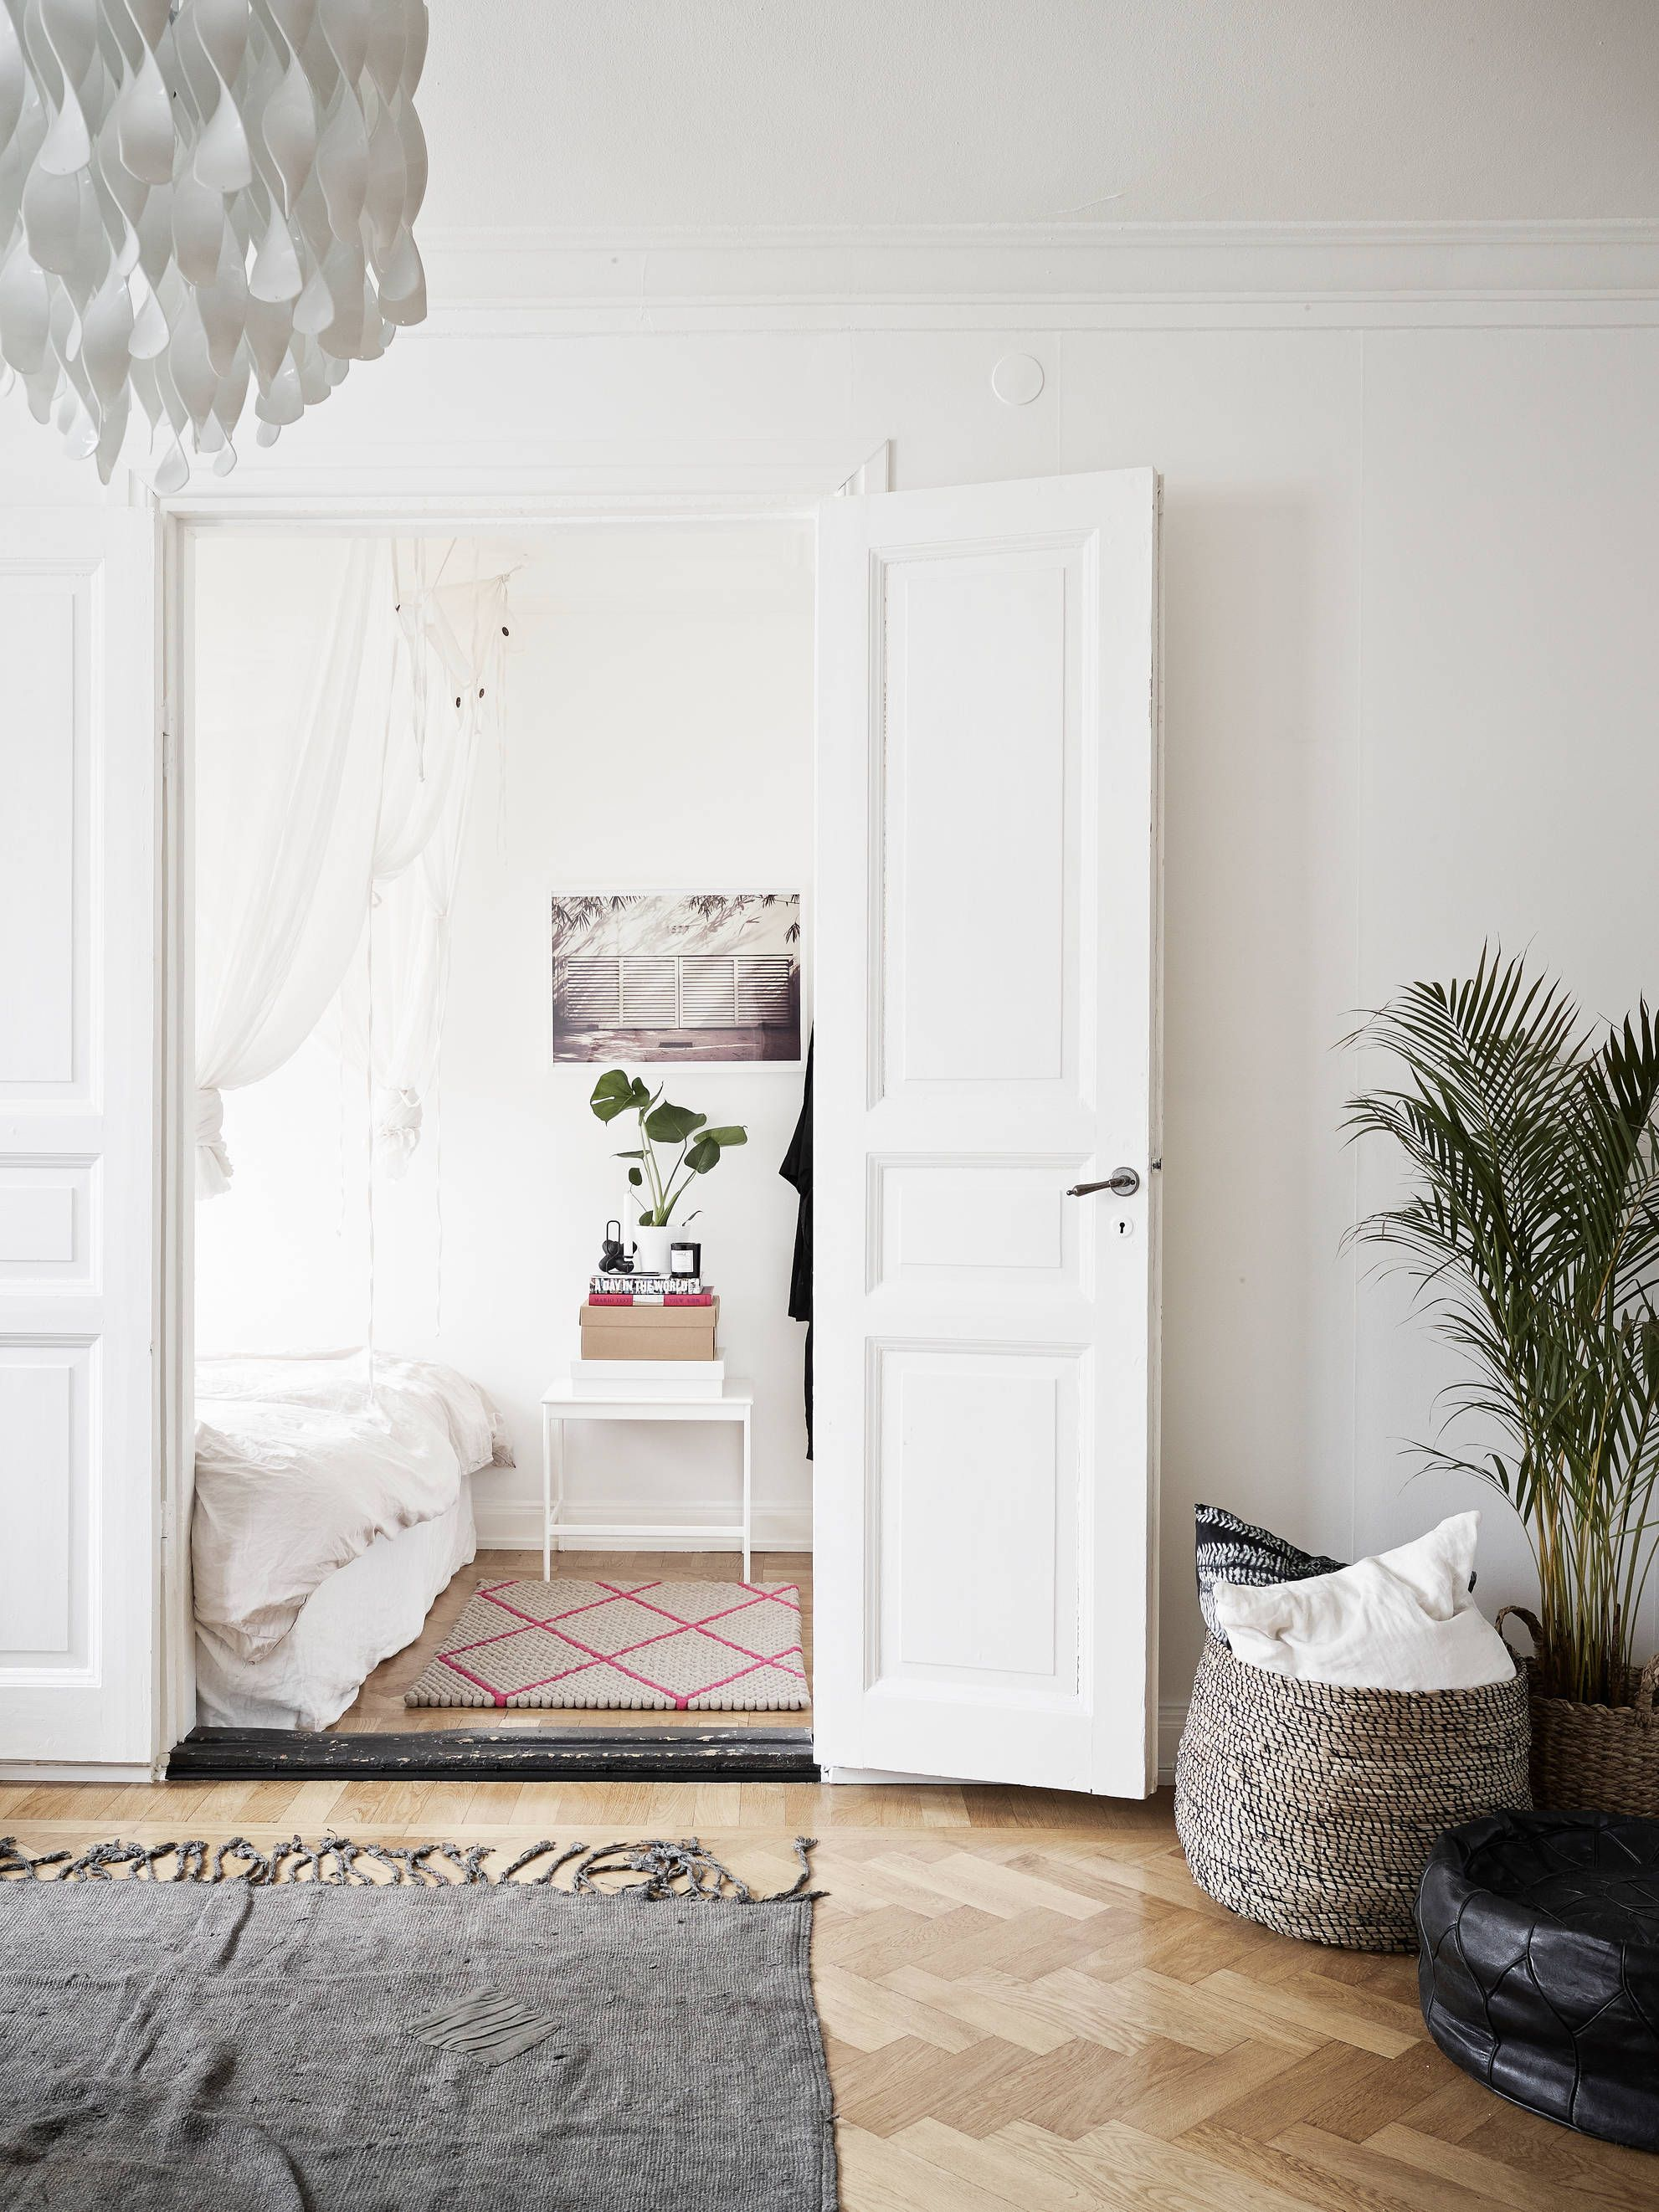 This Small Scandinavian Space Has Major Chic Factor | h o m e ... on nursery ideas with dark furniture, dark cherry furniture, grey walls with brown leather furniture, bedroom furniture layout ideas, white wood furniture, bedroom painted furniture ideas, cape cod furniture, bedroom ideas with twin bed, color schemes for dark furniture, best color with cherry furniture, modern home furniture, painting ideas with dark furniture, bedroom colors for dark furniture, bedroom with antique wrought iron bed, bedroom colors with dark furniture, dark blue bedroom furniture, home decor ideas with dark furniture, dark wood furniture, mathis brothers furniture, bedroom makeover ideas,